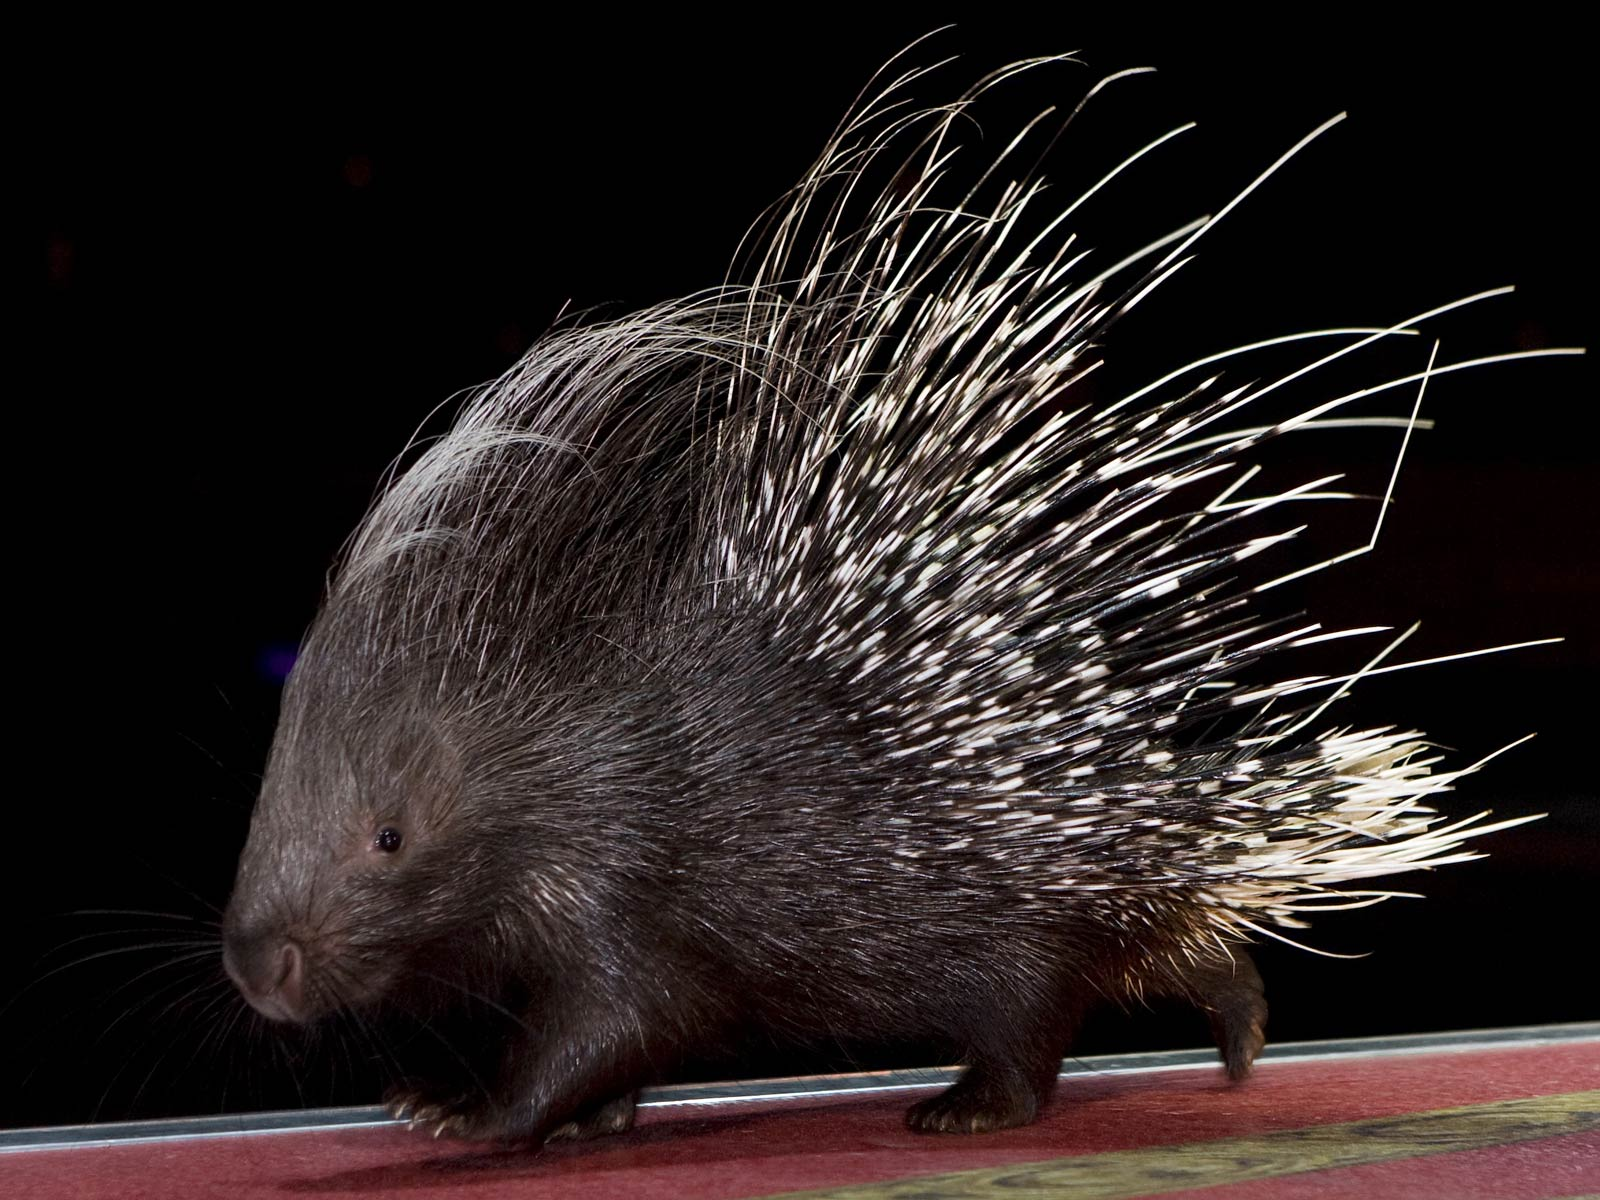 Porcupine HQ wallpapers